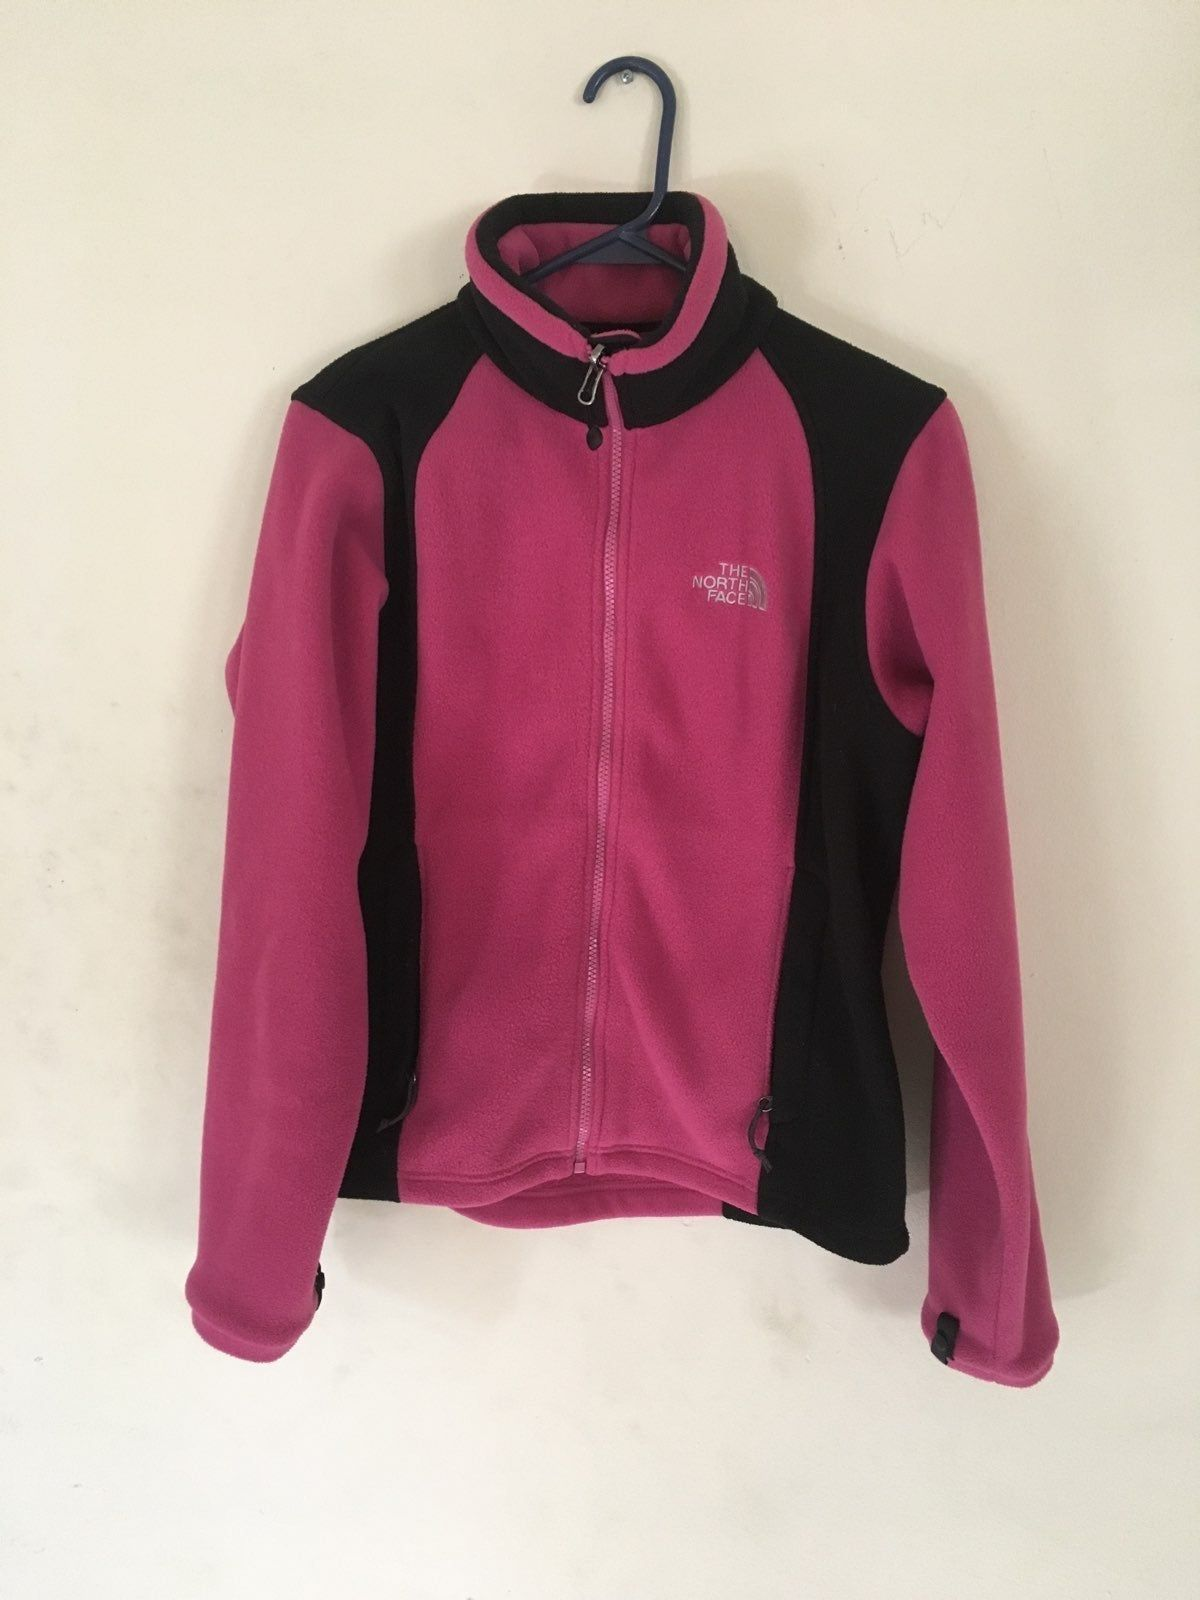 Pink And Black The North Face Fleece Jacket Fits Like A Women S Medium Will Post More North Face Fleece Jacket North Face Resolve Jacket North Face Jacket [ 1600 x 1200 Pixel ]